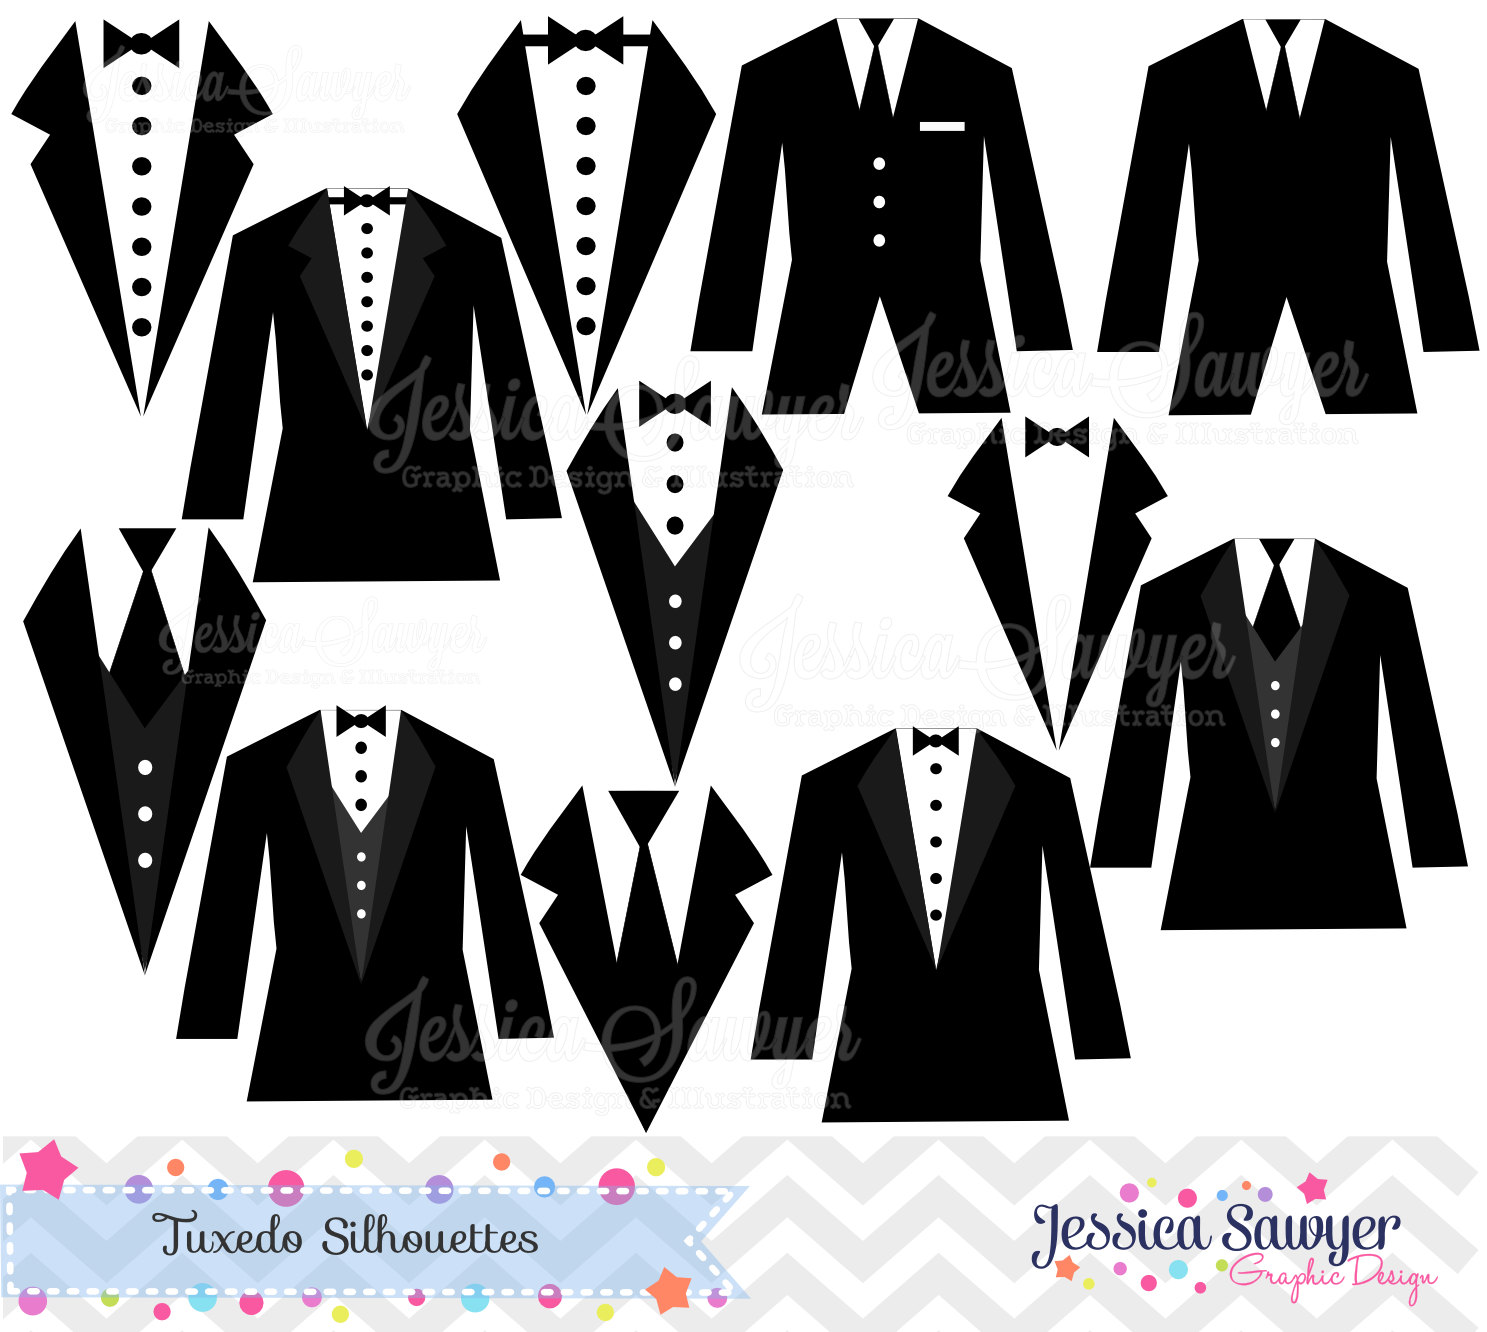 White Dress clipart wedding suit Silhouettes silhouette INSTANT item? DOWNLOAD